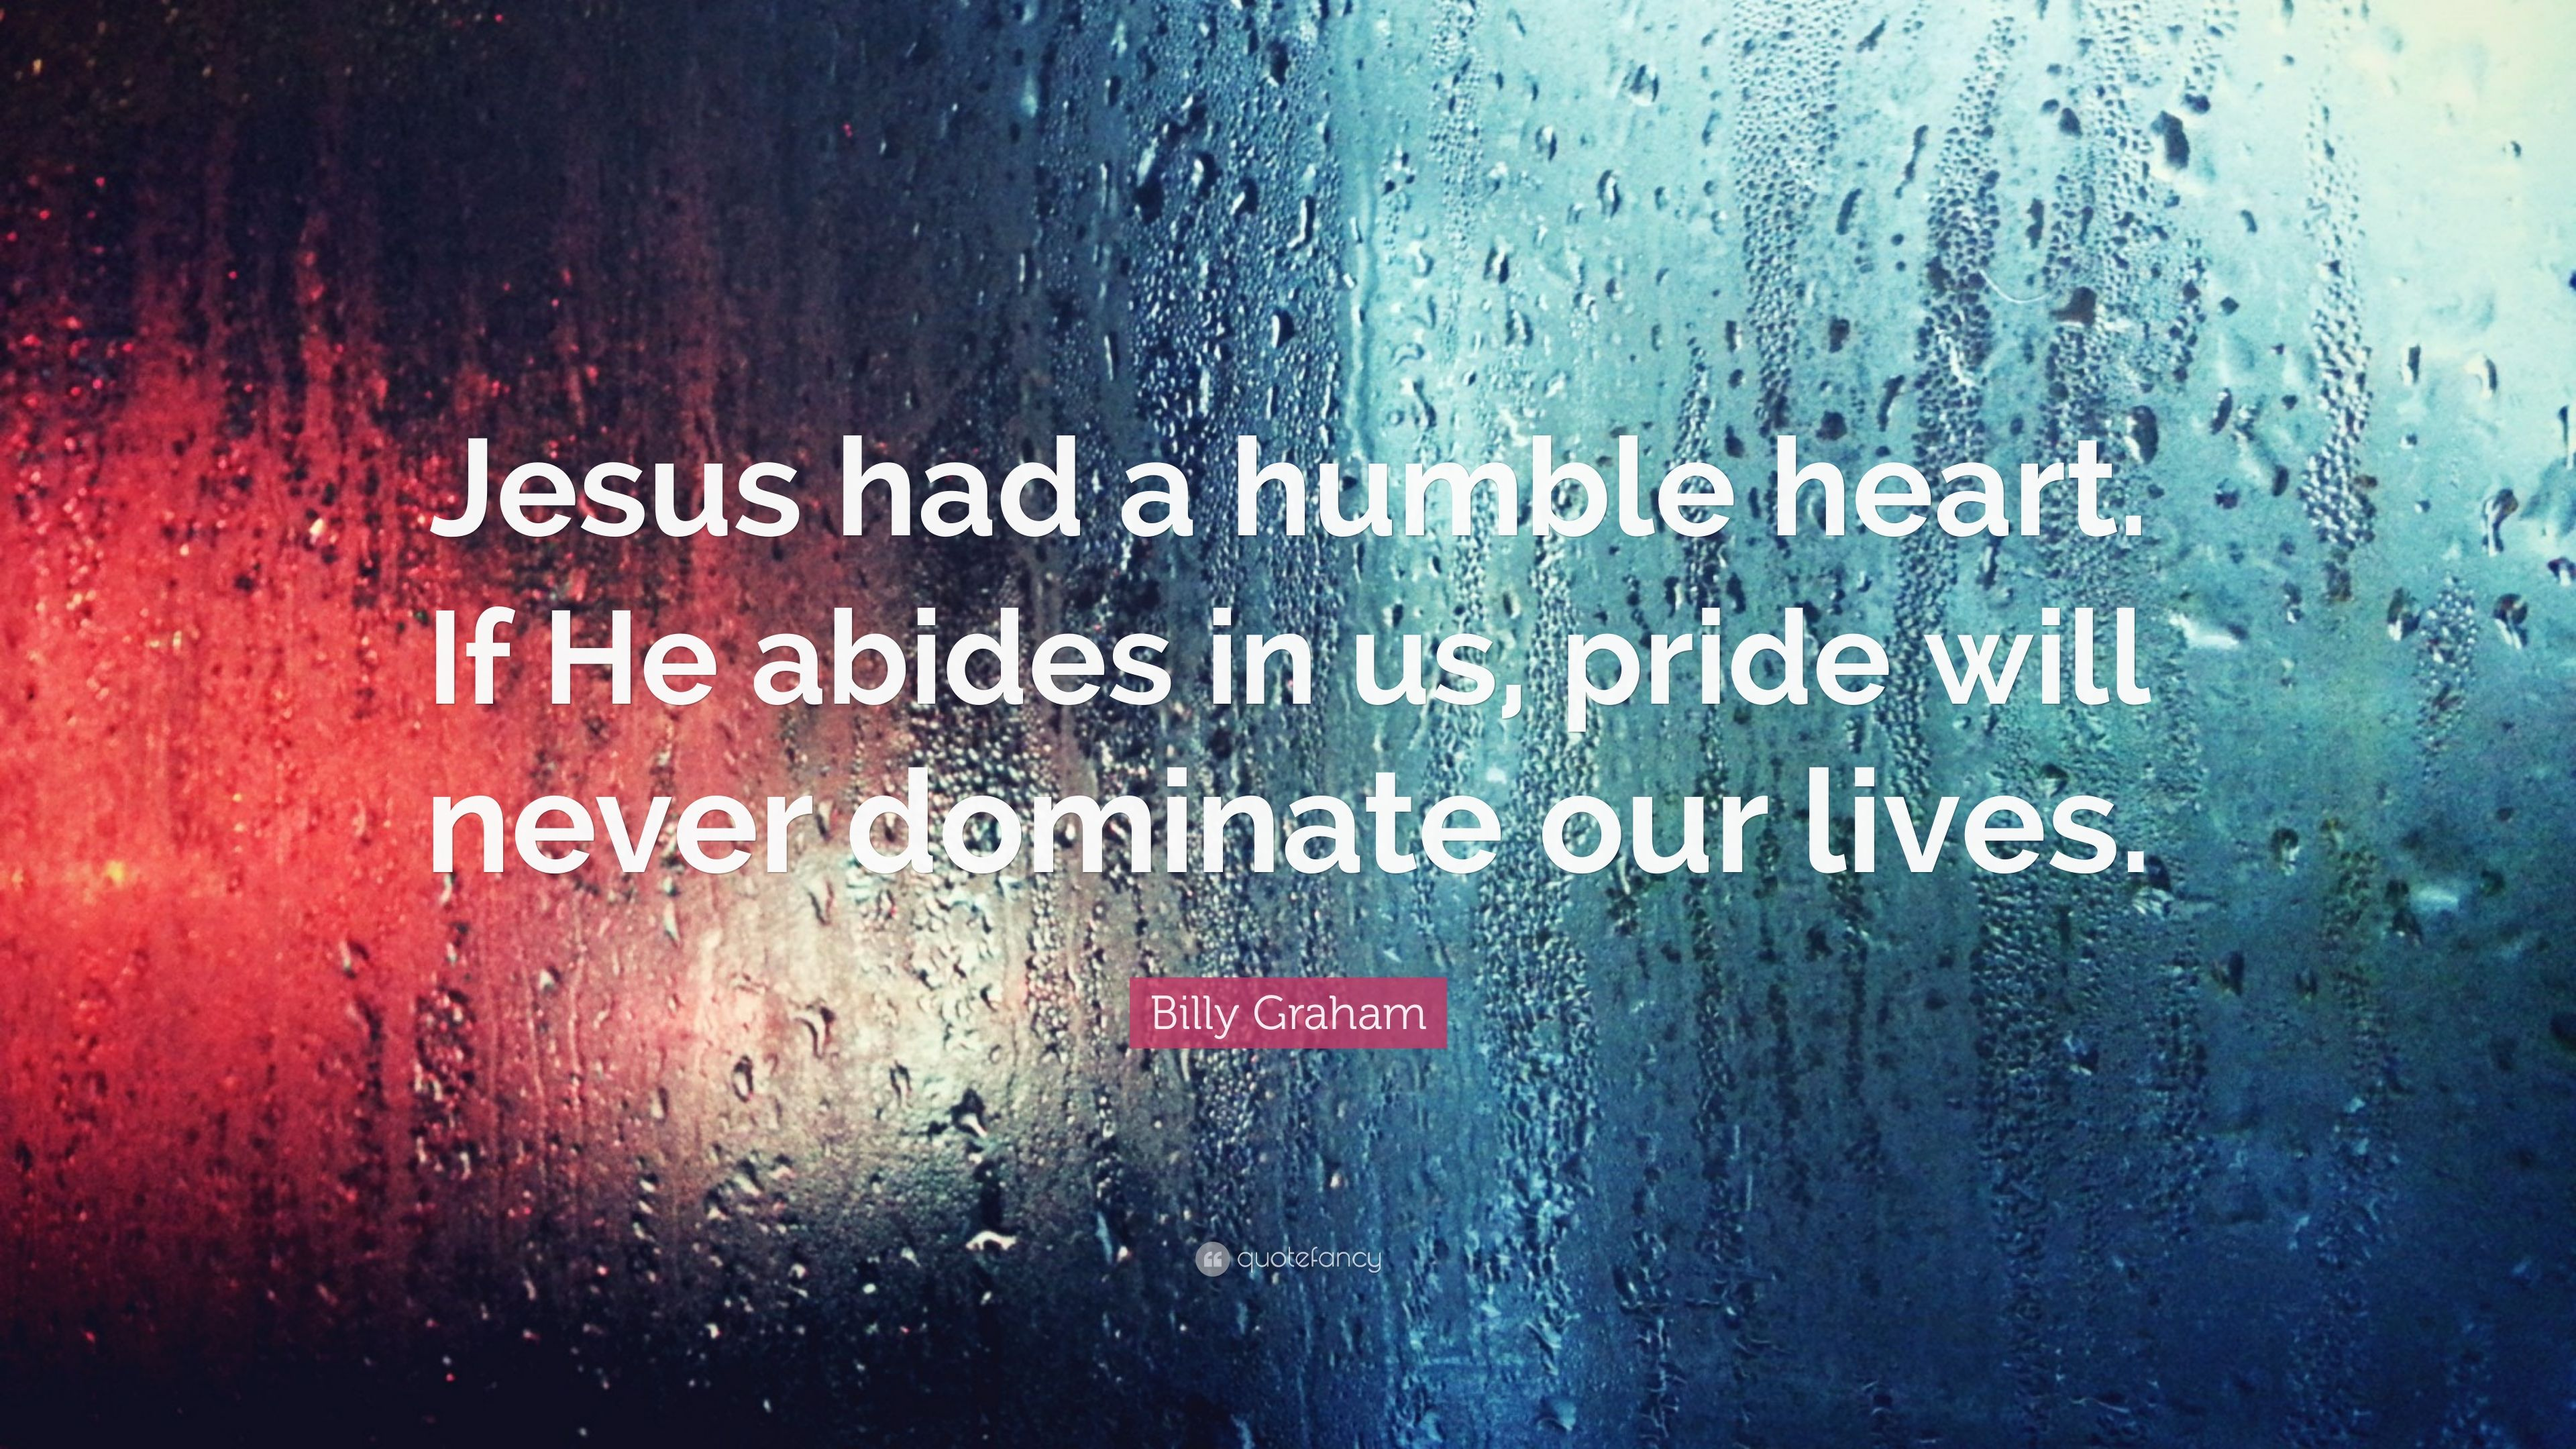 billy graham quote jesus had a humble heart if he abides in us